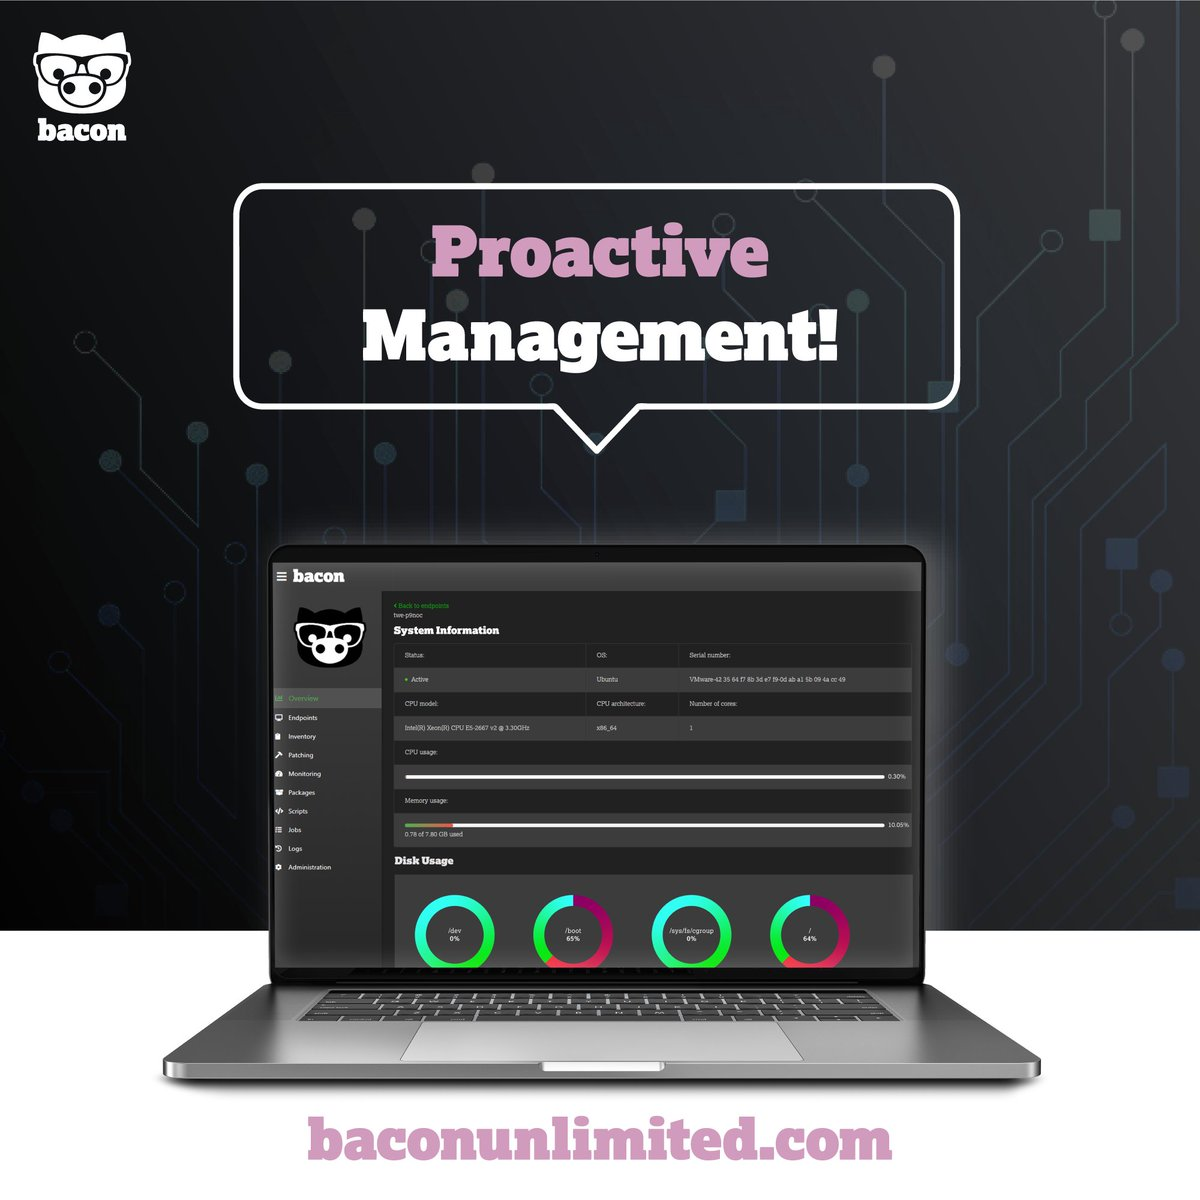 Announcing Bacon v1.4--proactive management!   FREE #webinar on June 5 @ 2pm. Sign up today at https://baconunlimited.com  #baconunlimited #getbacon #bacon #itsupport #itservices #itsoftware #tech #newtech #technology #innovation #software #windows #mac #linuxpic.twitter.com/YAZnTt6Qss